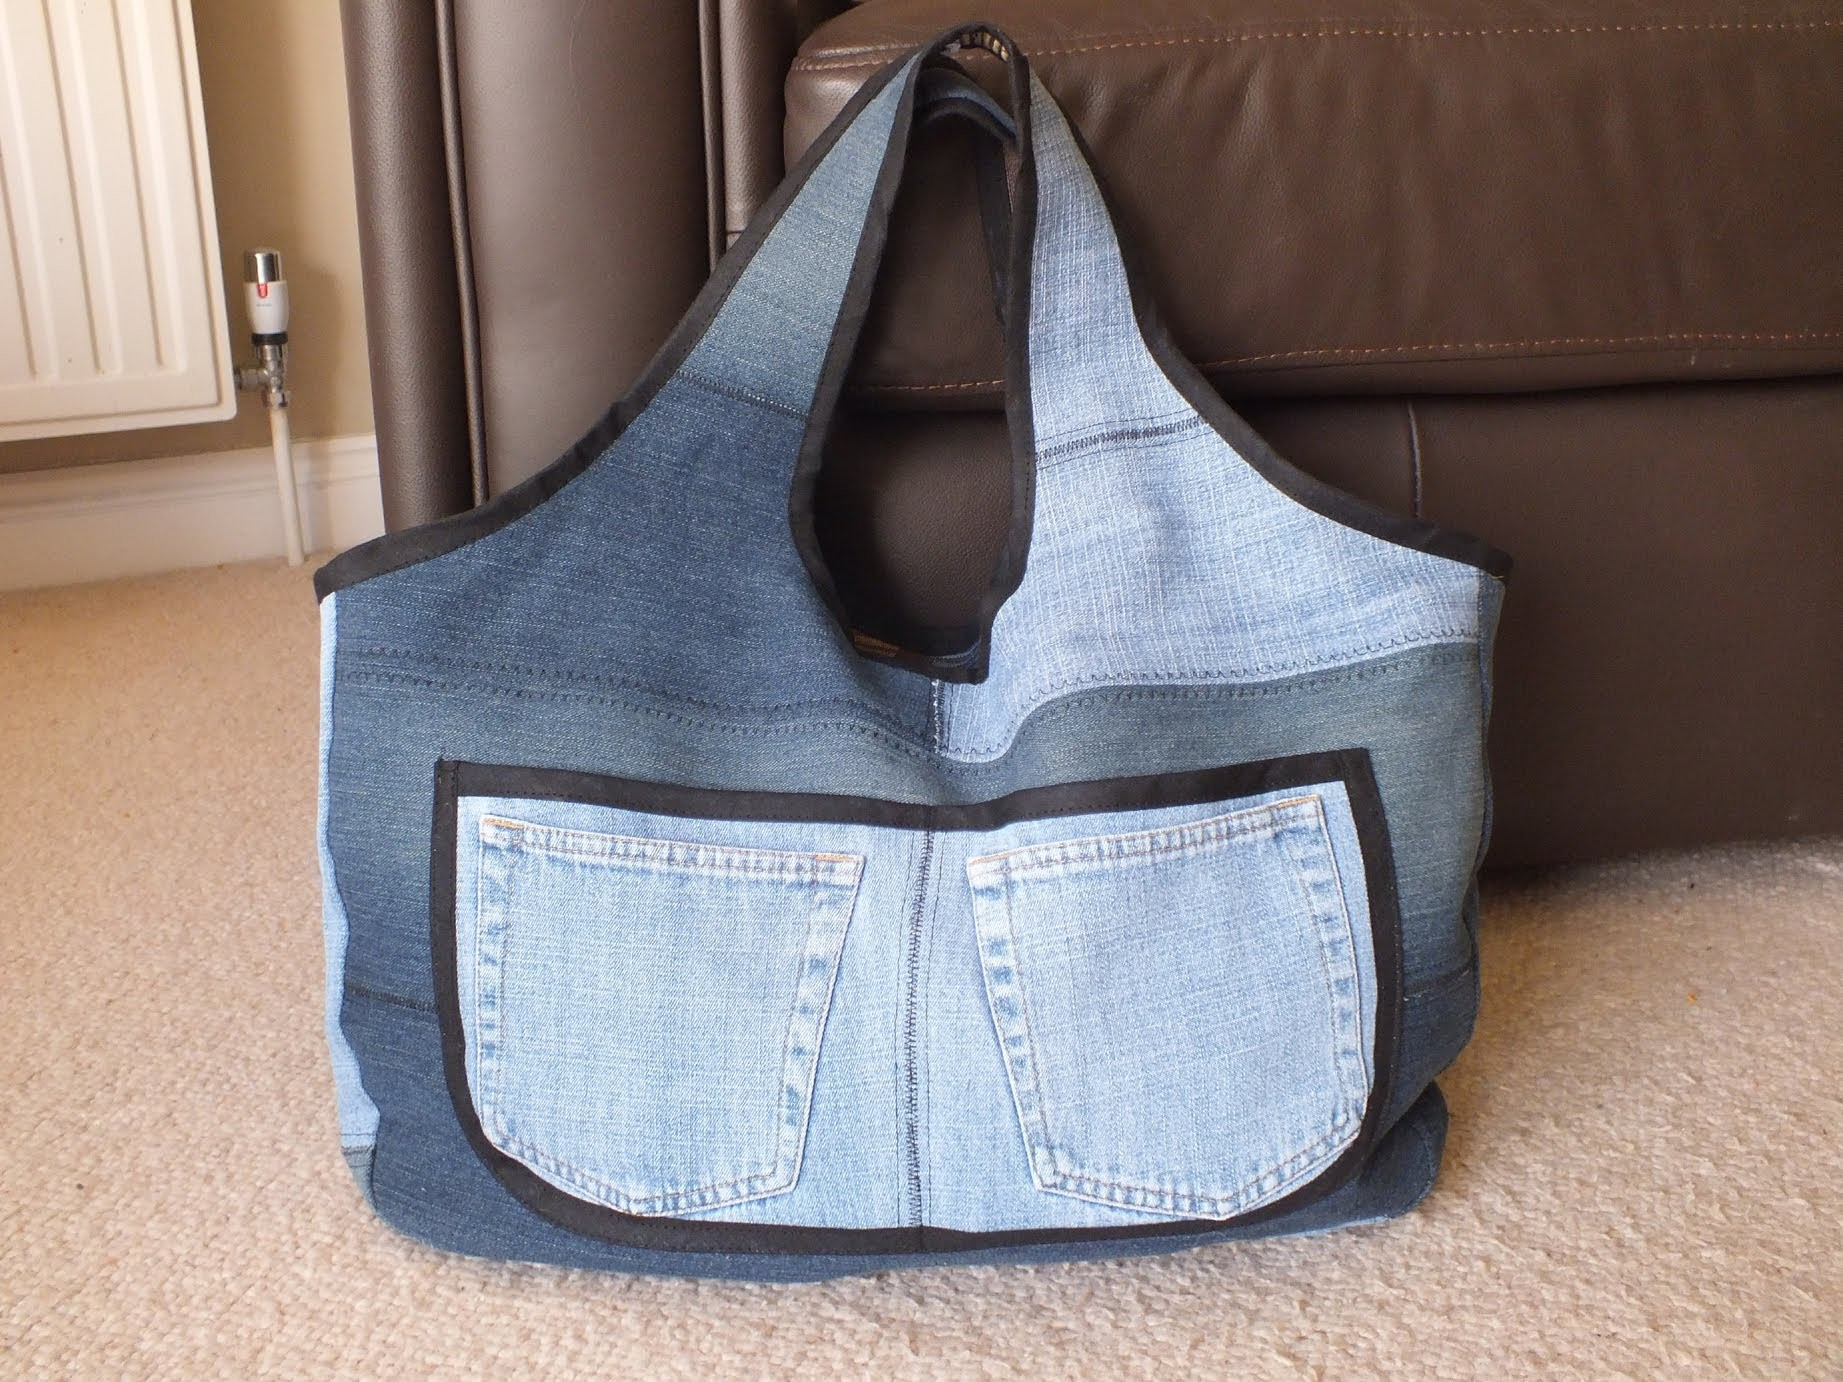 Recycled Jeans Bag (Sahara - 3) DIY jeans bag. denim sewing project